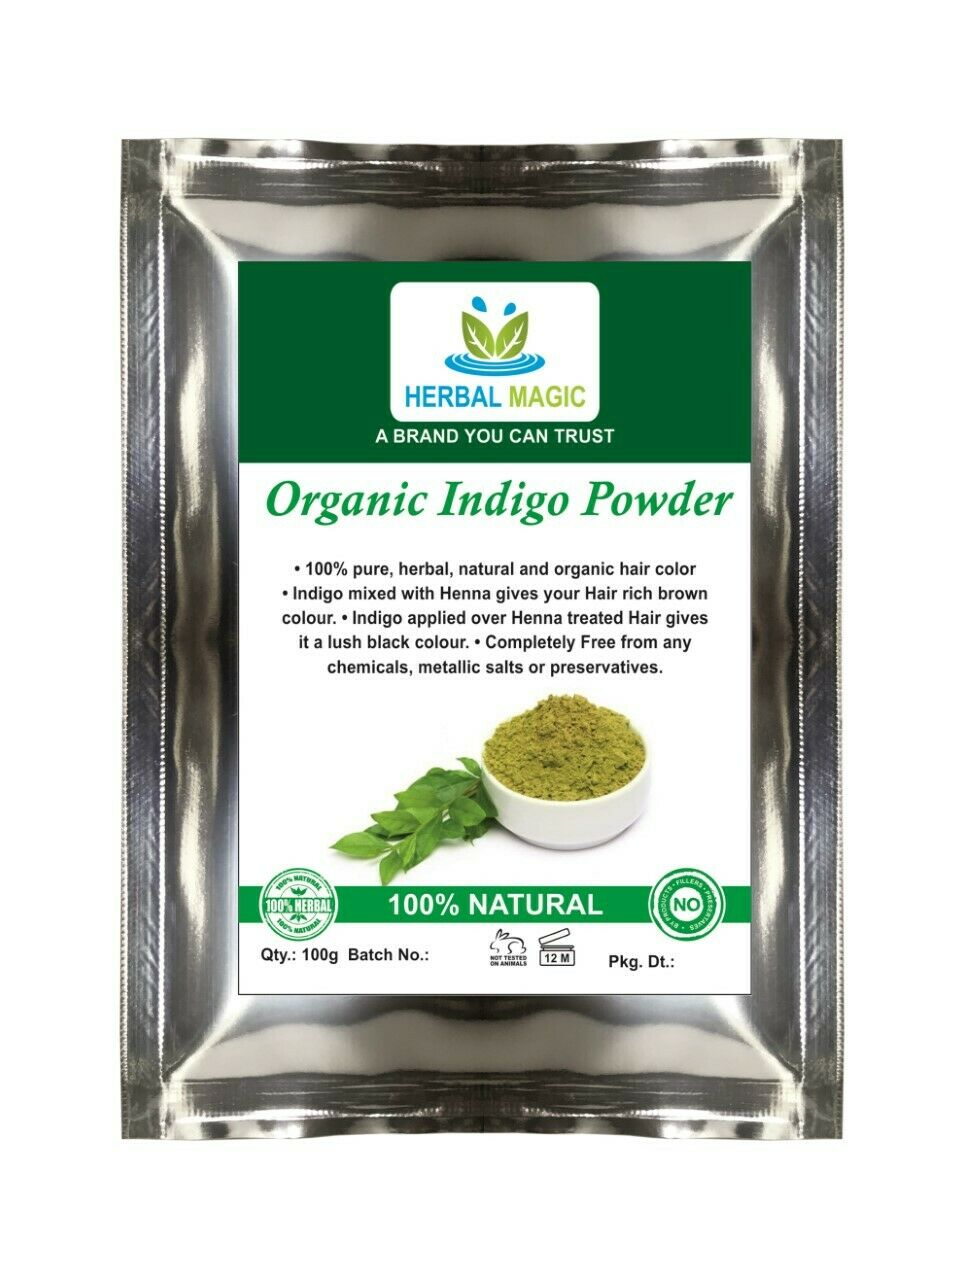 100g-1kg USDA INDIA Organic Certified Indigo Powder- Premium Quality